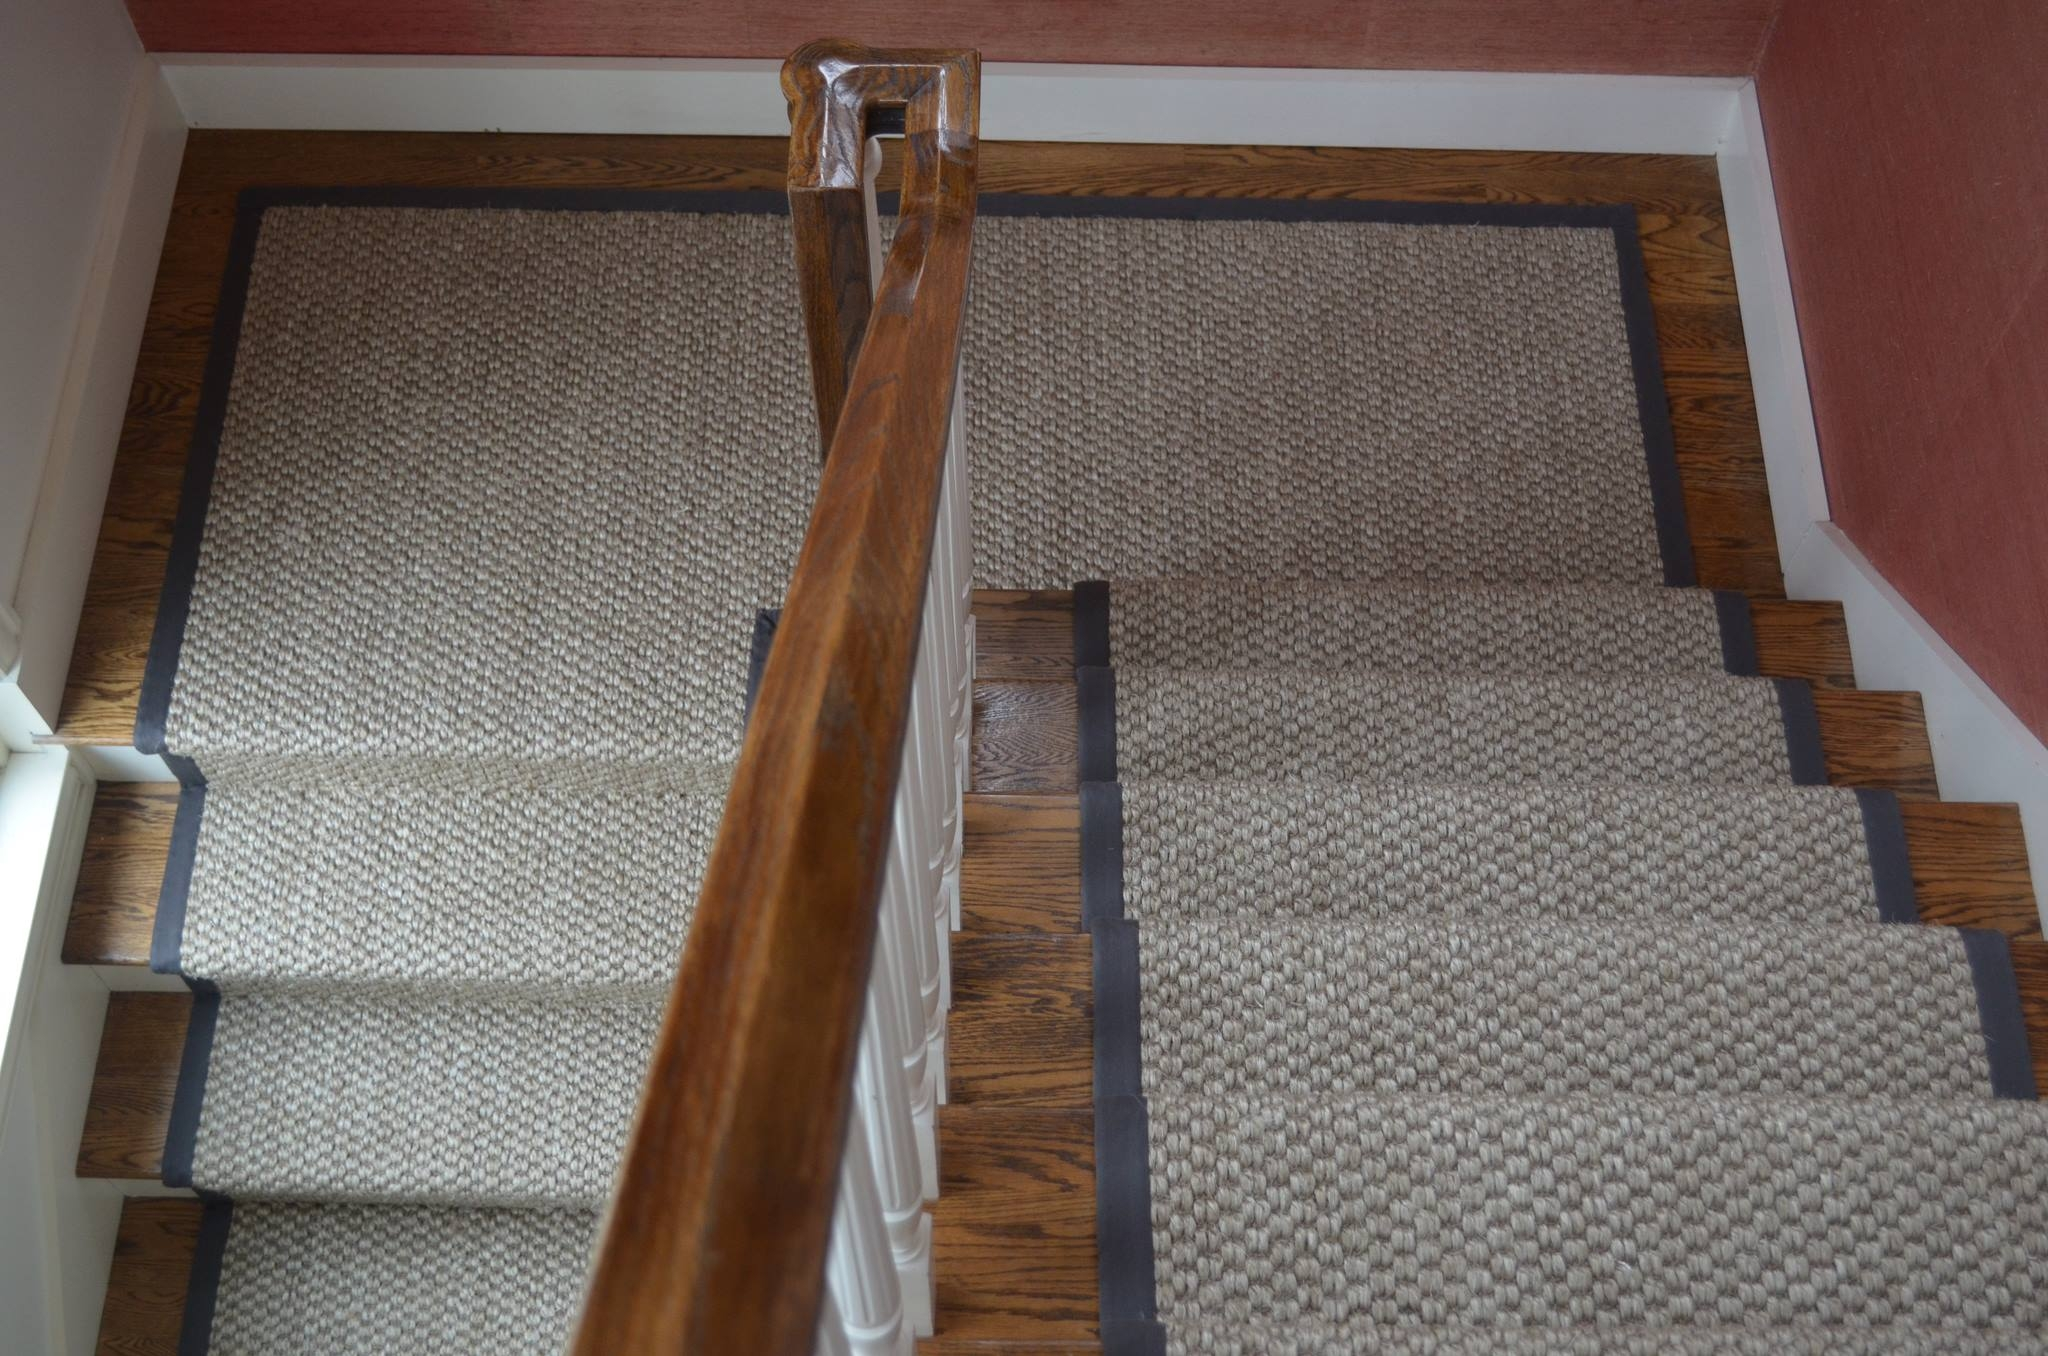 Compact Stair Tread Rugs Contemporary 30 Stair Tread Rugs Intended For Modern Stair Tread Rugs (Image 7 of 15)